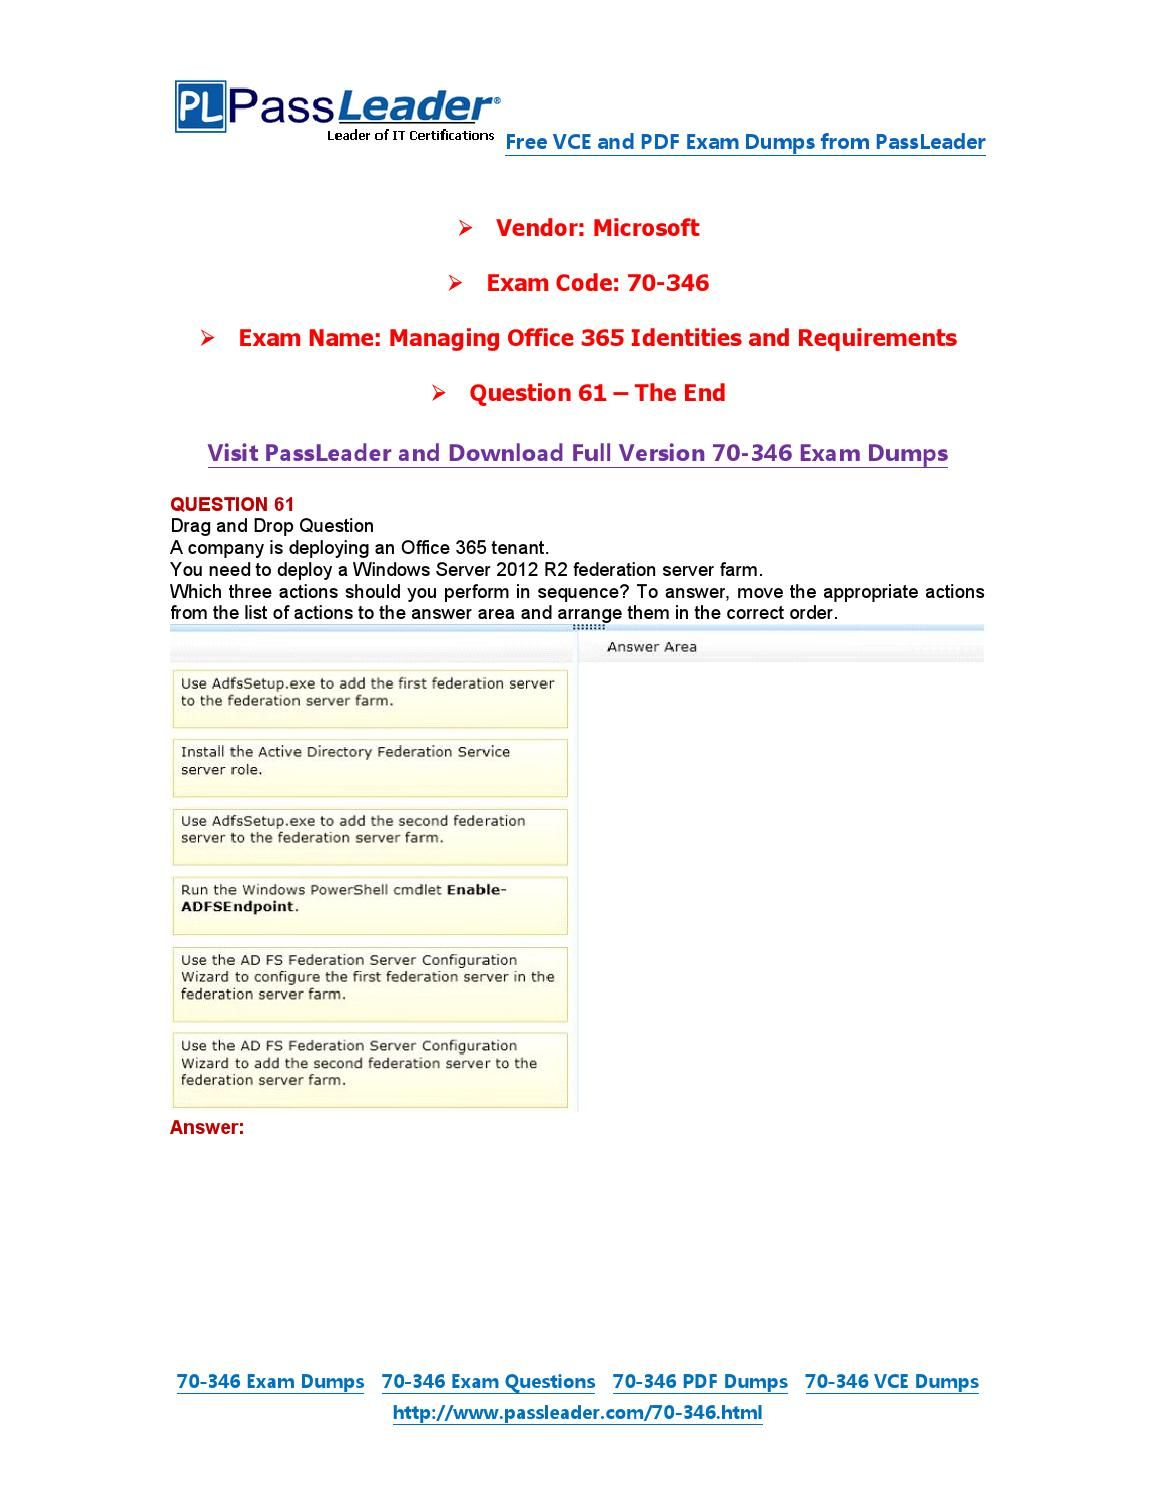 70 346 Exam Dumps With Pdf And Vce Download 61 End 70 346 Exam